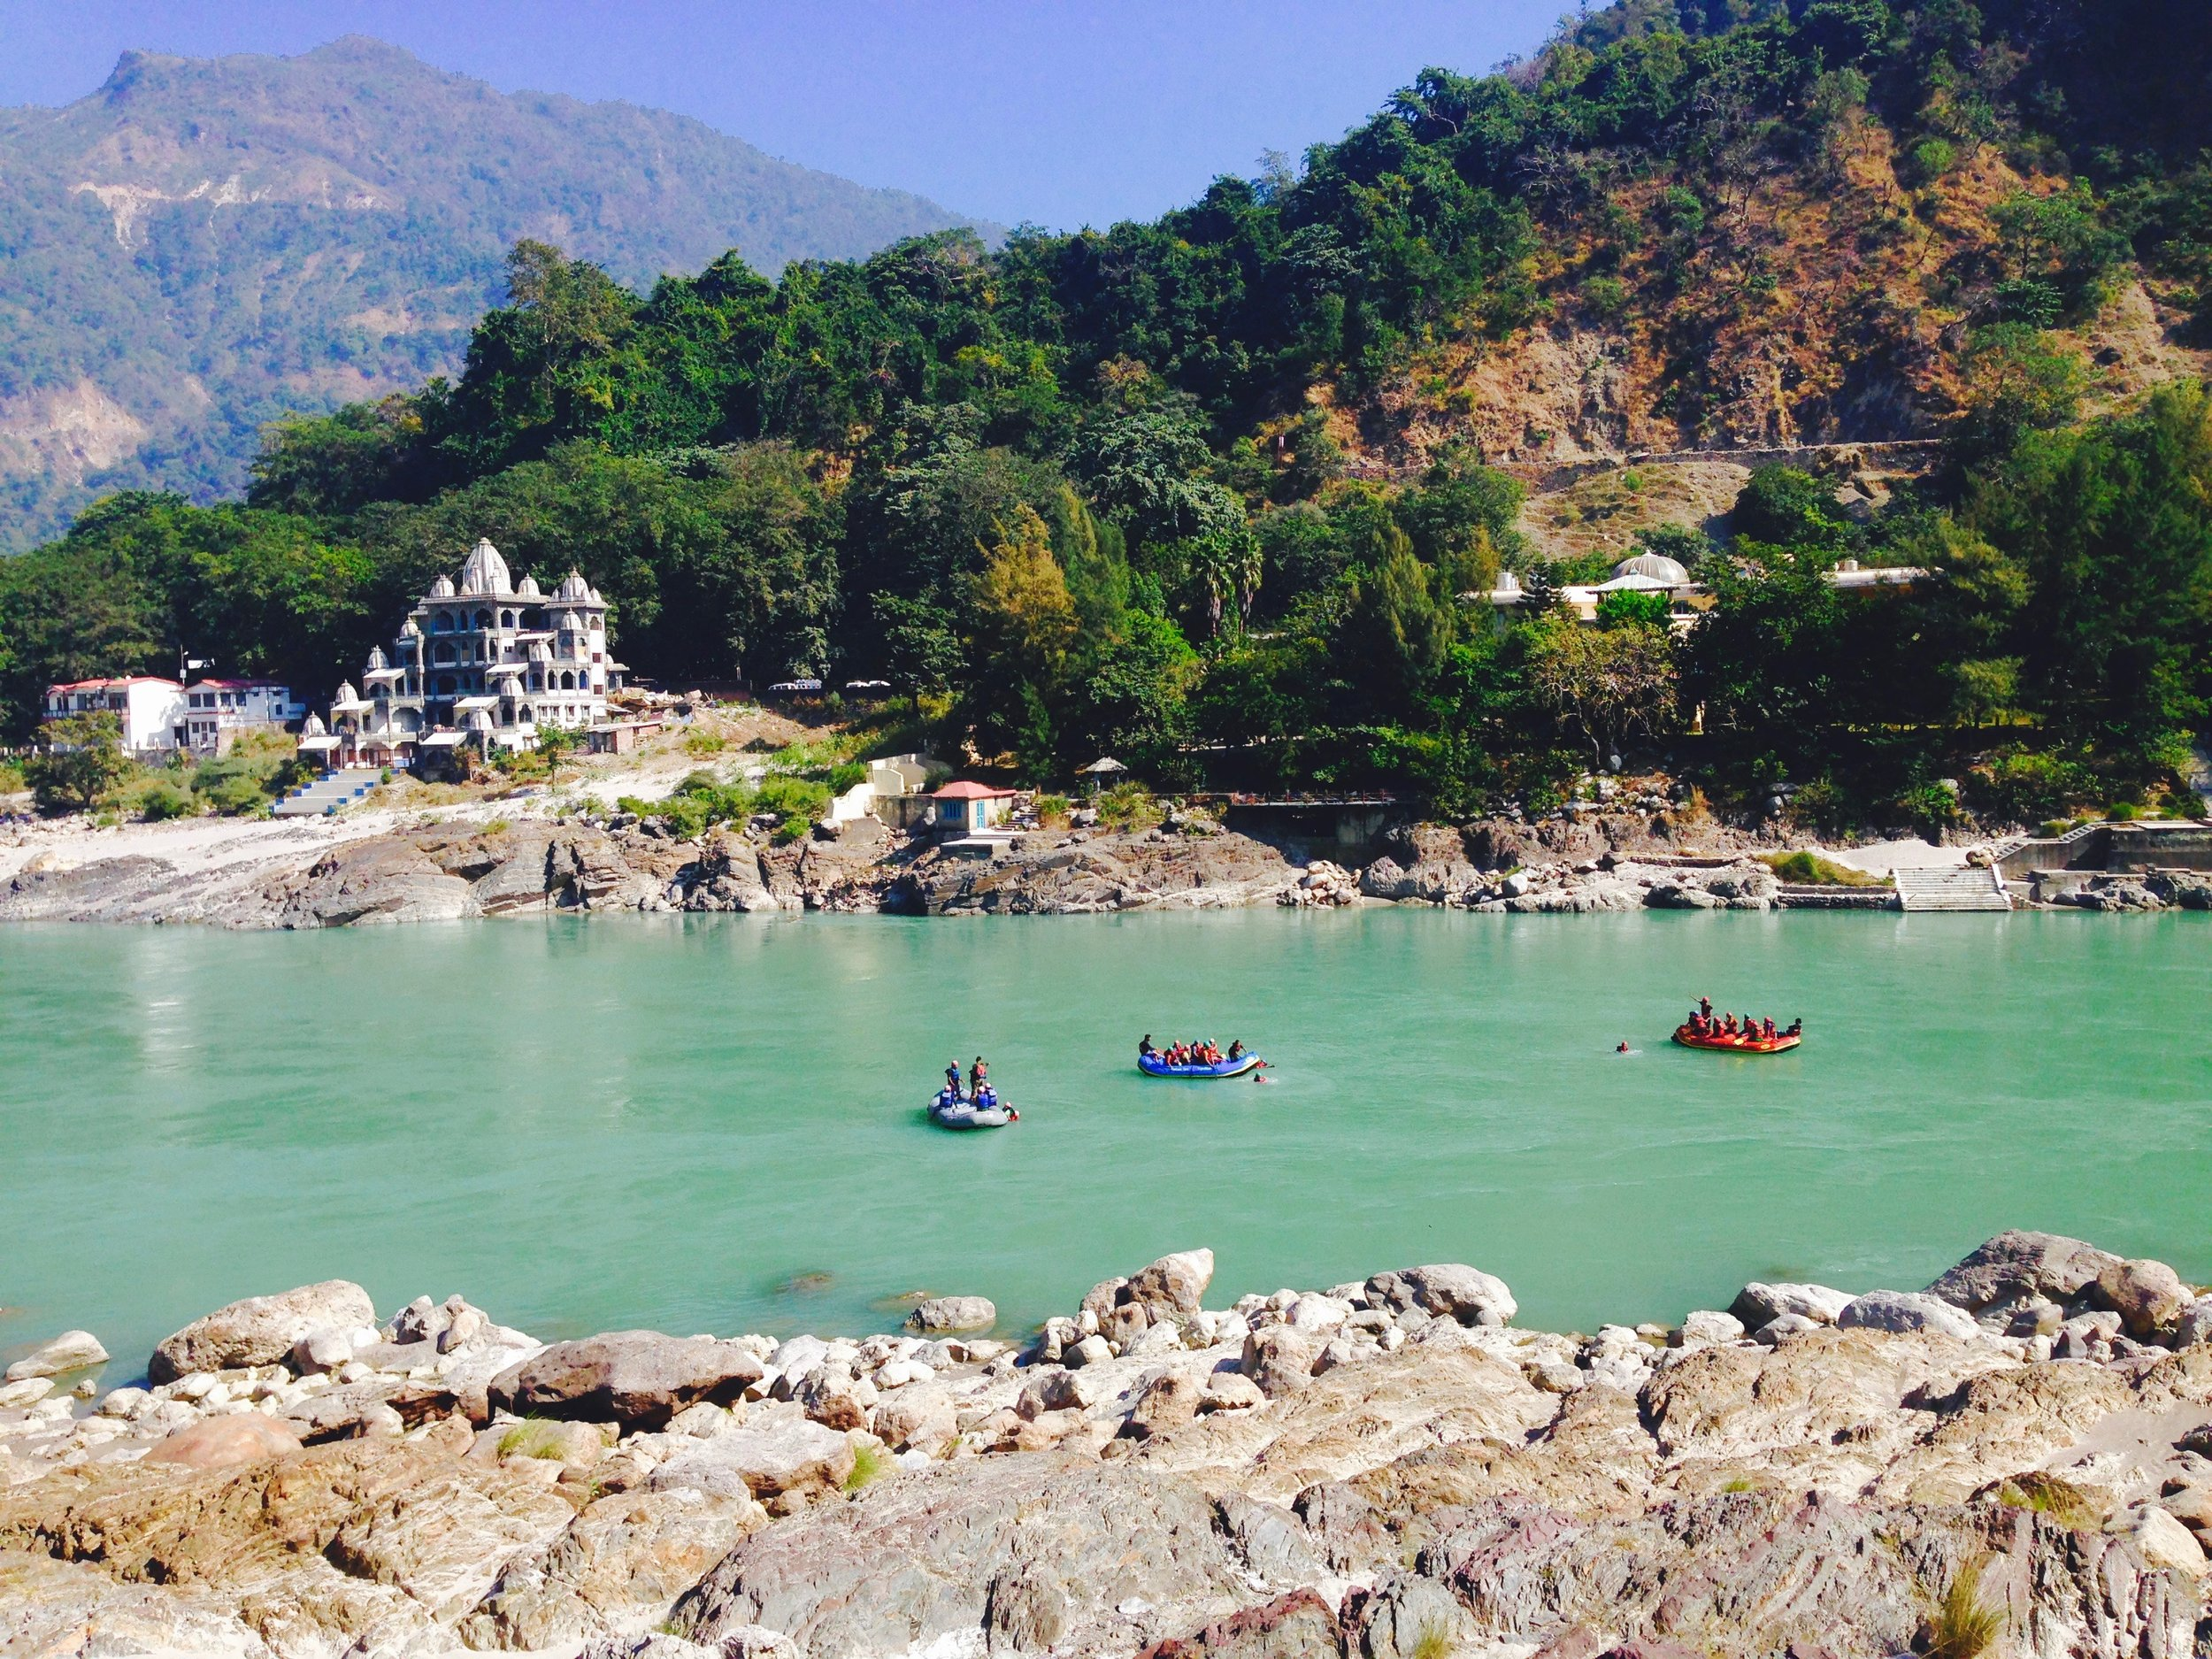 White water rafting on the Ganga is a thing in Rishikesh, along with bungee jumping, fly foxing  (zip lining superman style from one mountain to another), and pendulum swinging